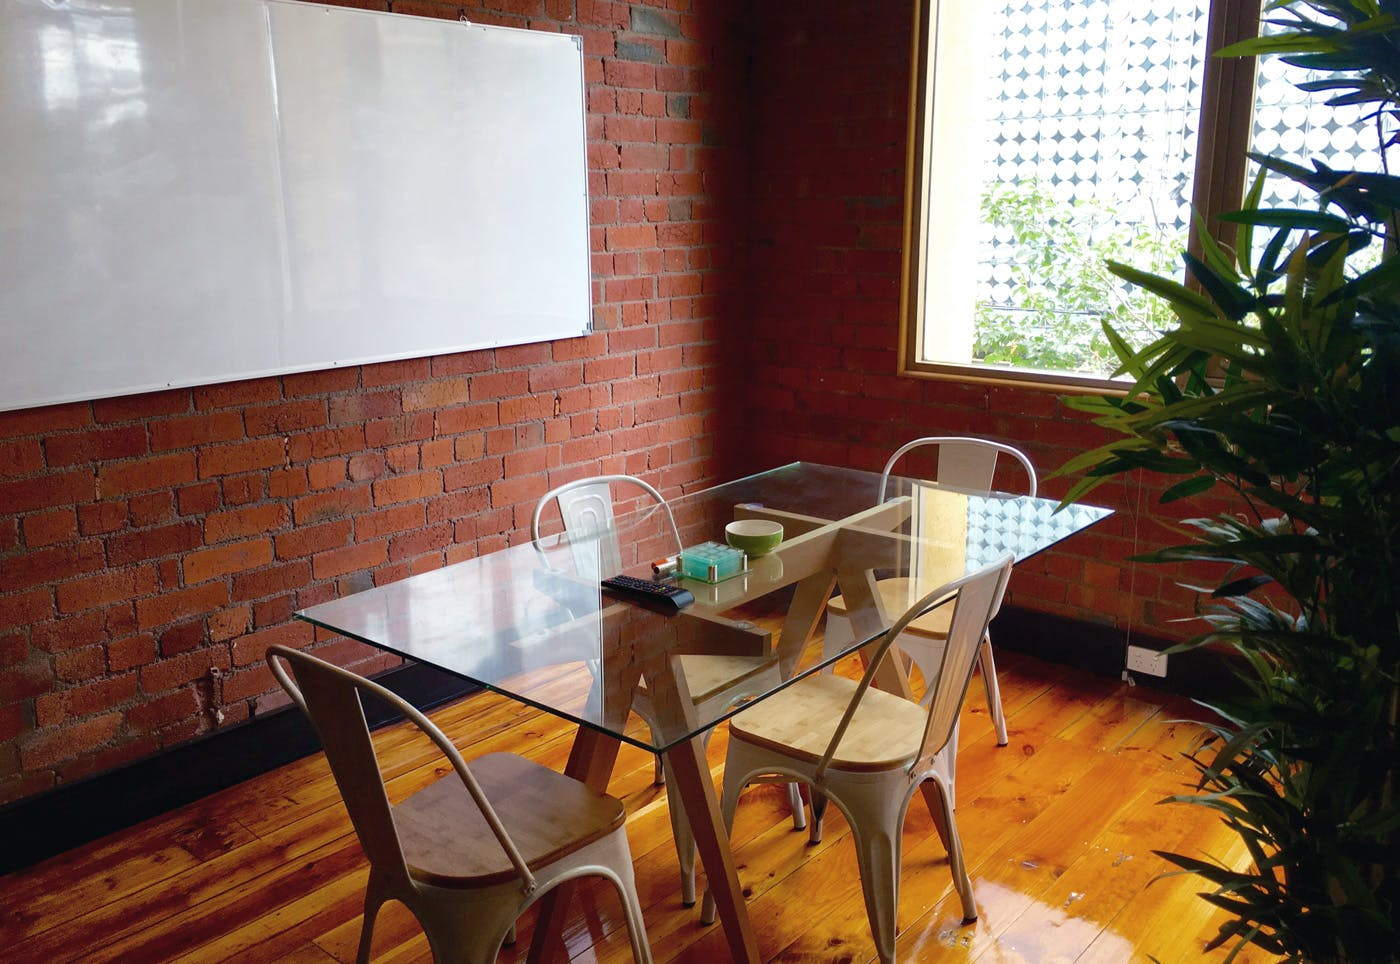 The Corner, meeting room at Framework, image 1